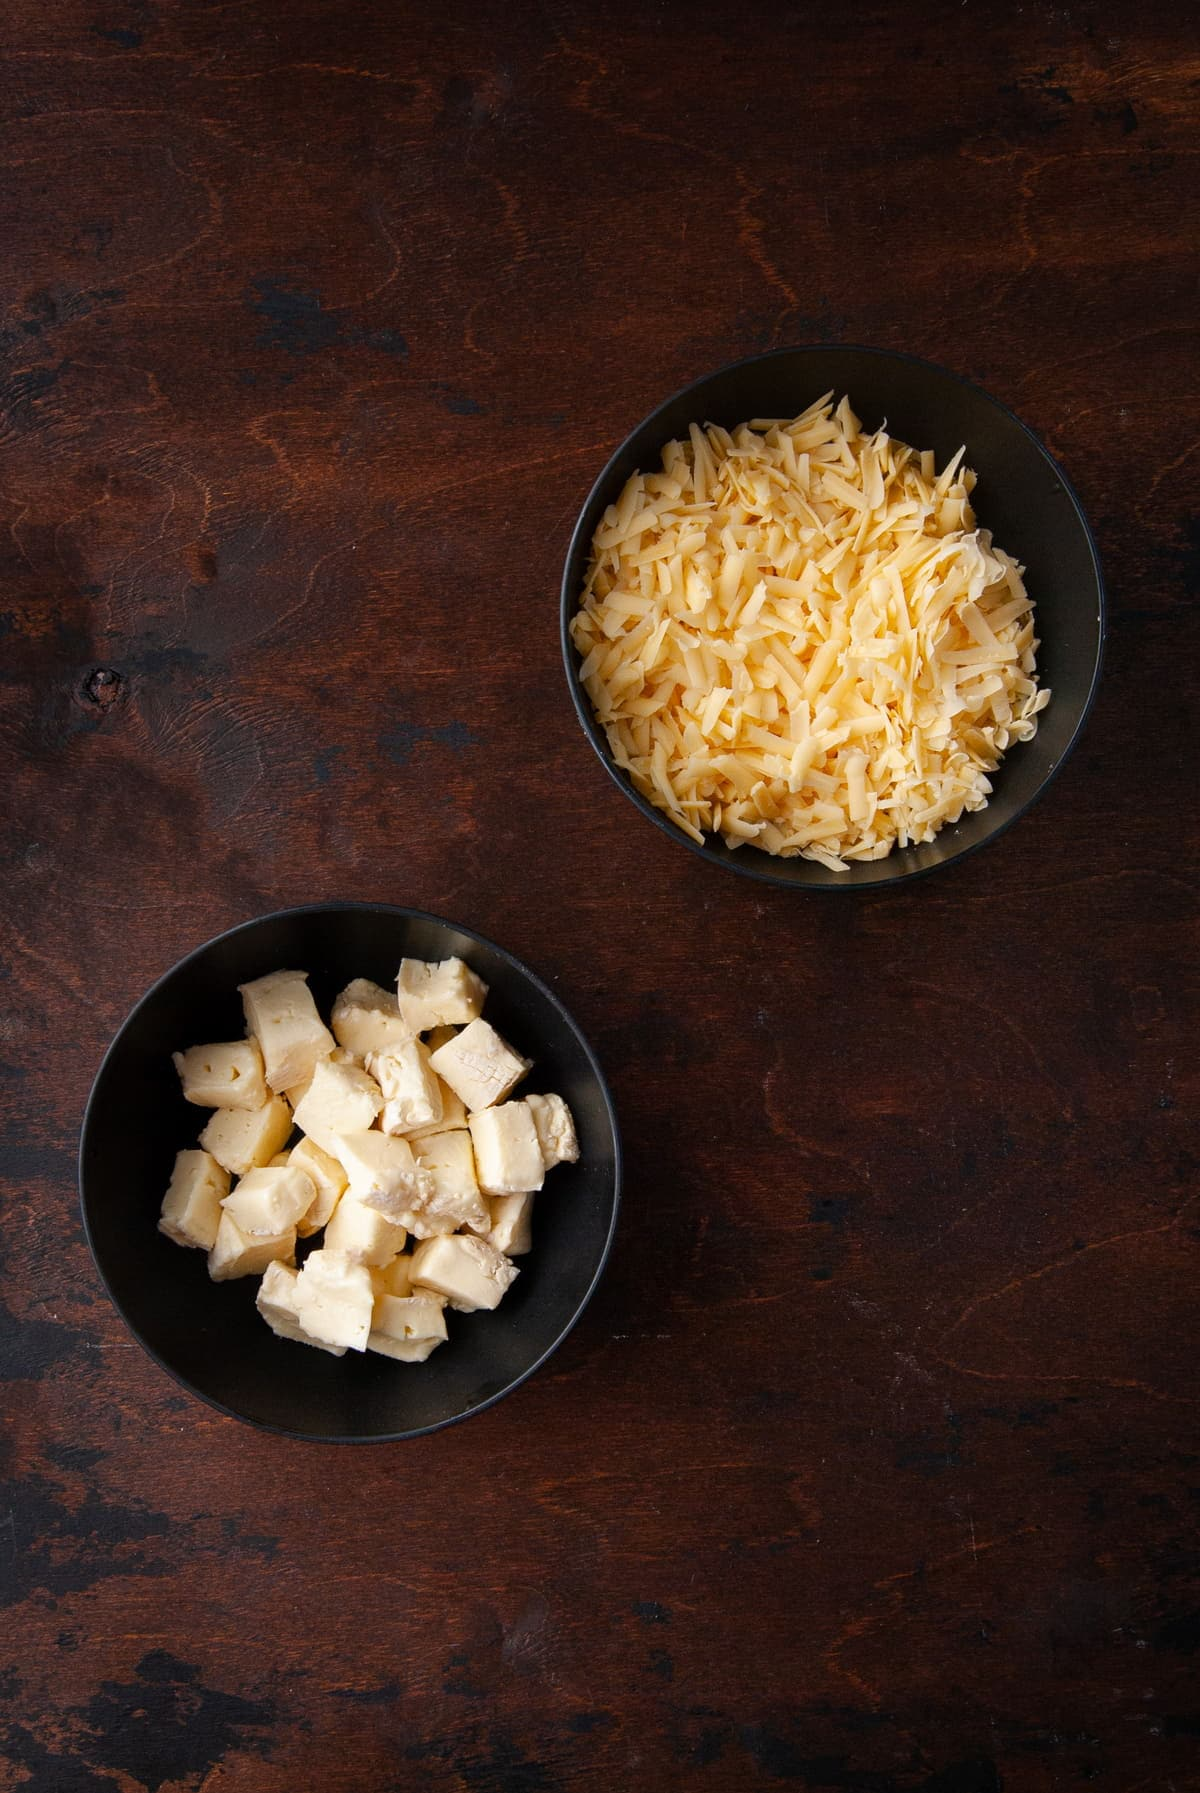 grated gouda and cubed brie